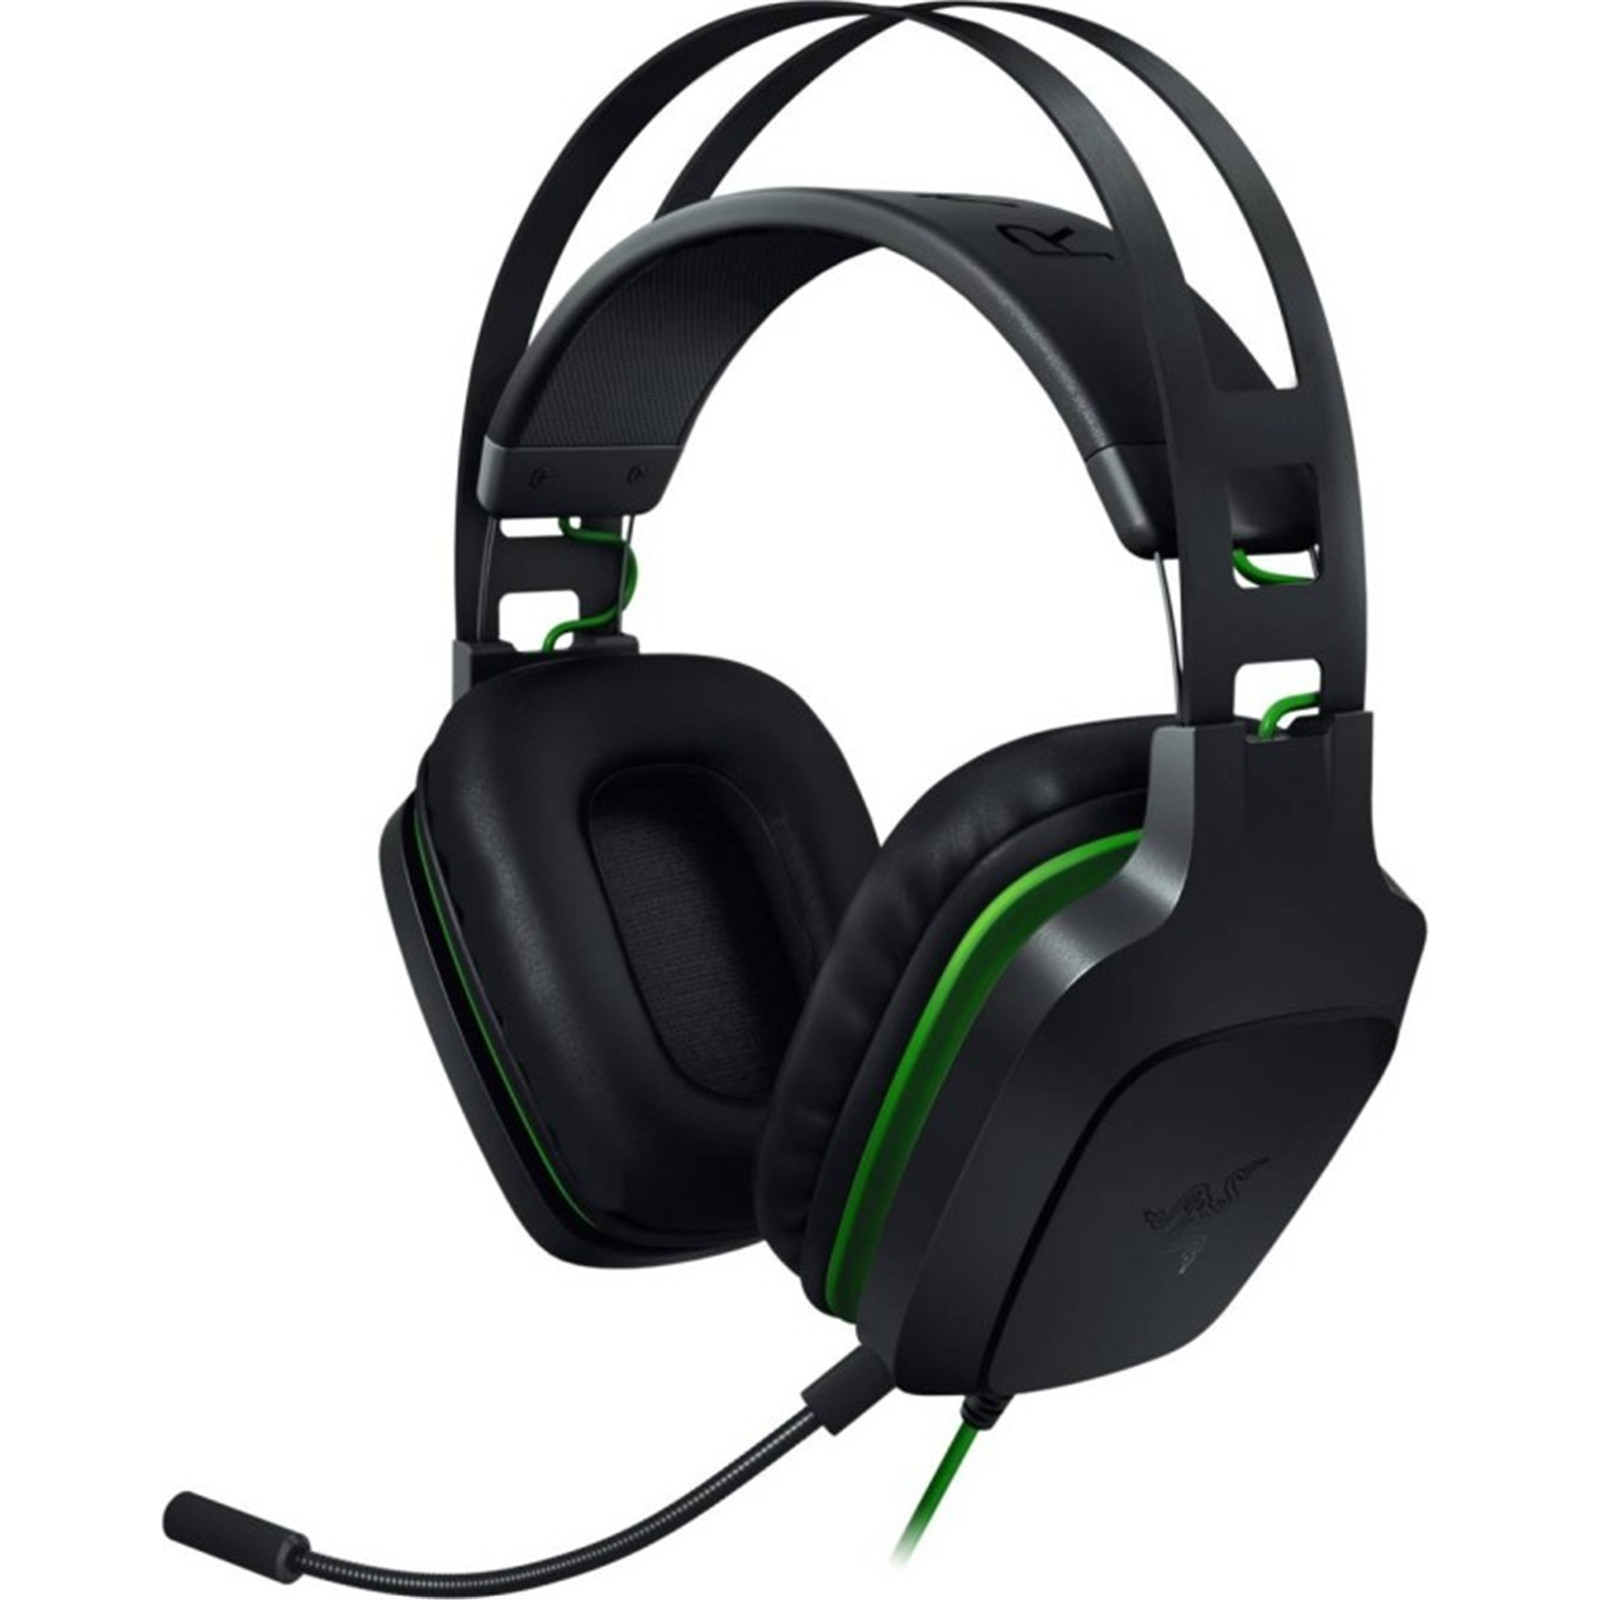 6907c394681 Razer Electra V2 Gaming Headset - Compatible with PC, Xbox One &  Playstation 4